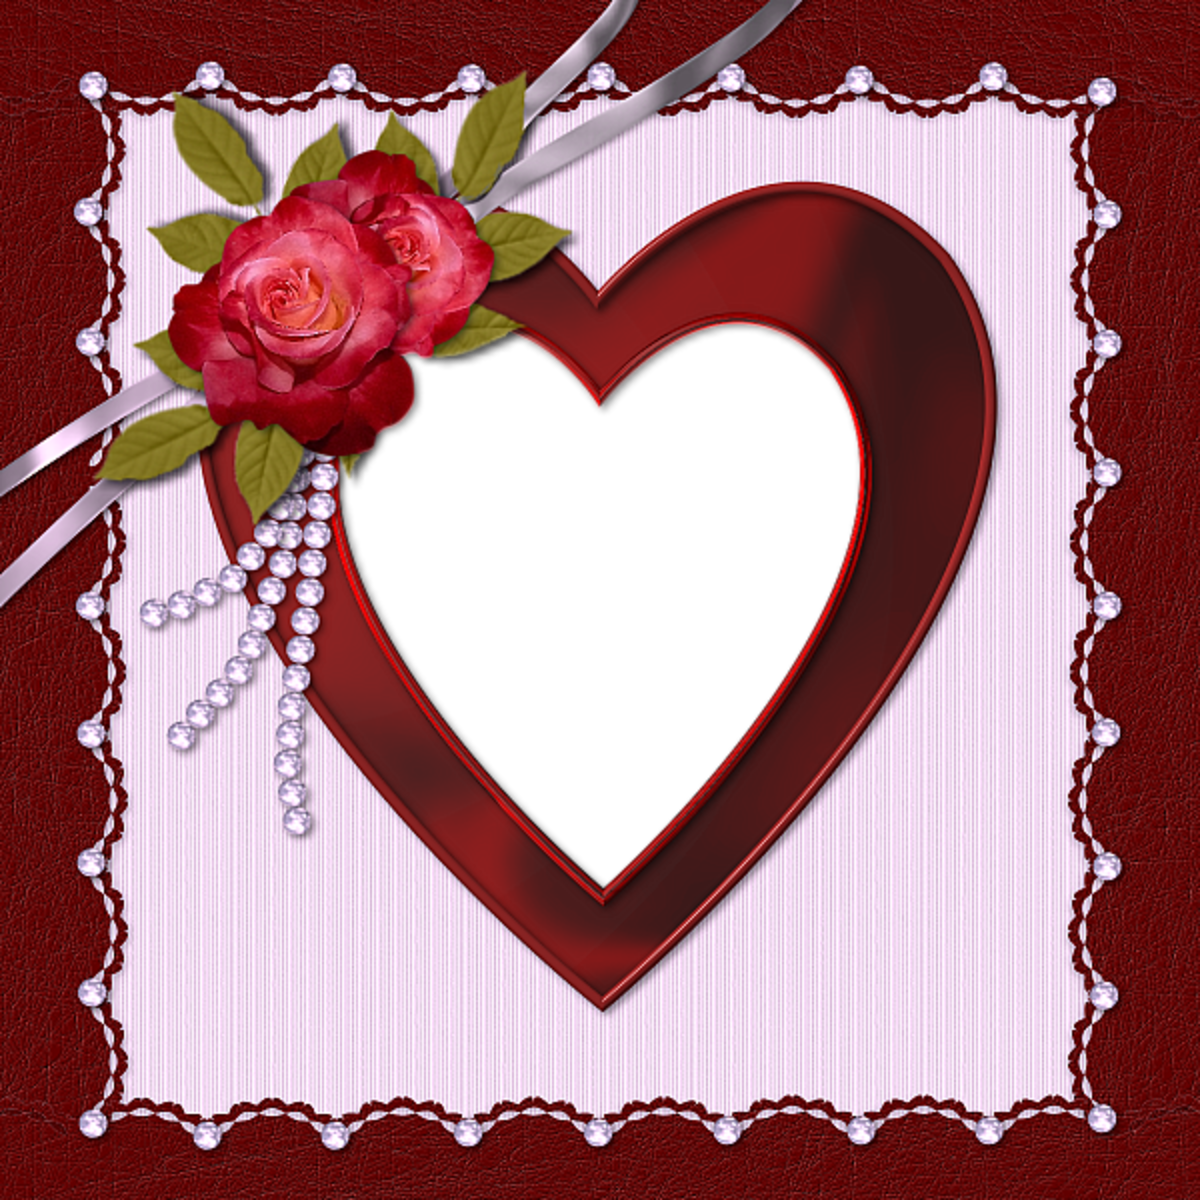 Deep Red Heart photo frame